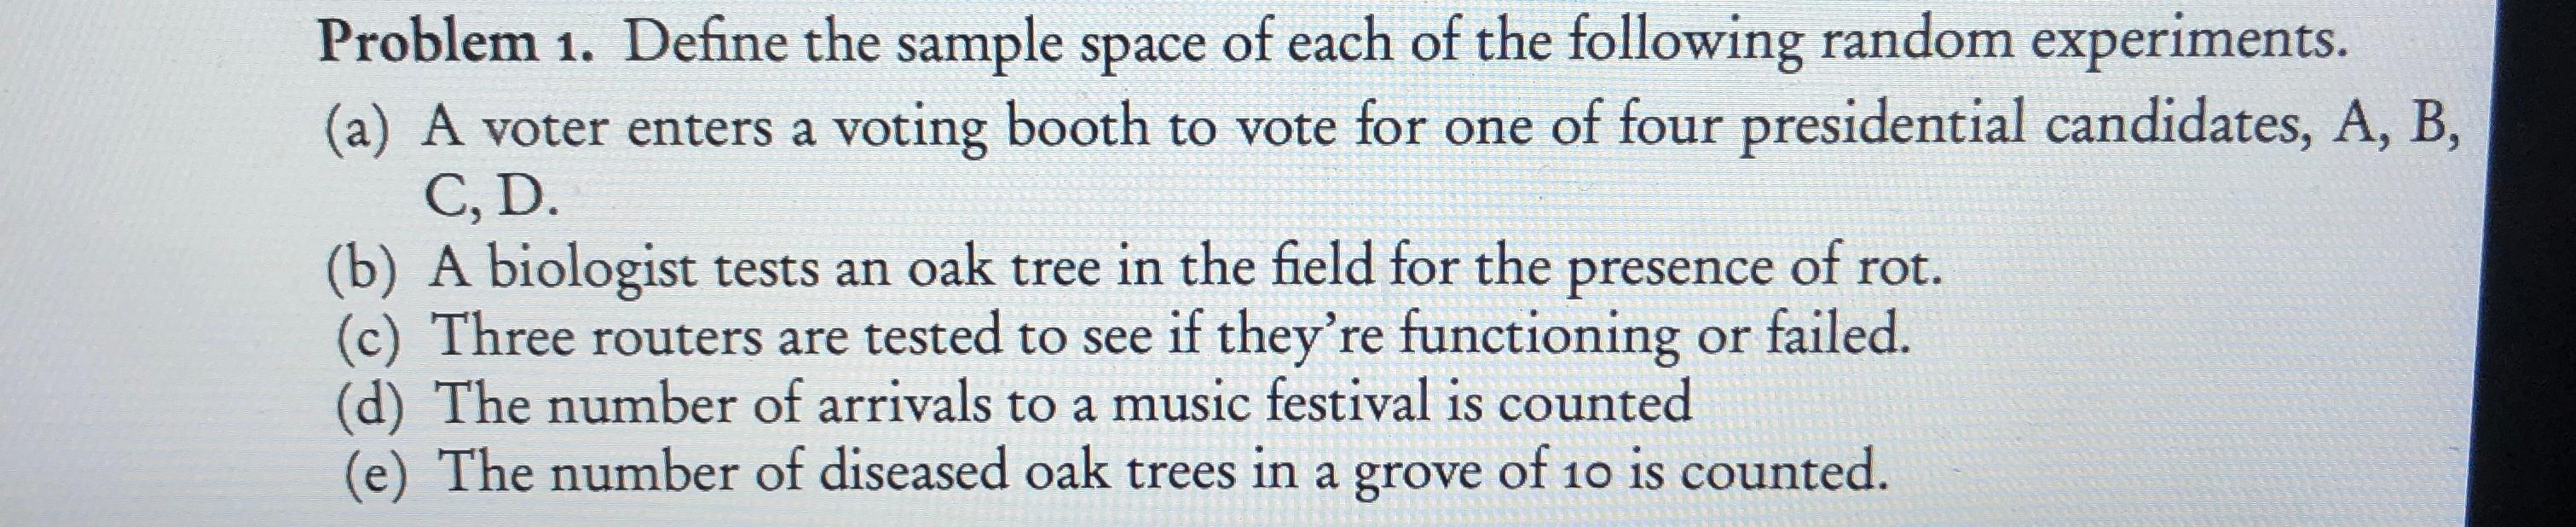 Problem 1. Define the sample space of each of the following random experiments. (a) A voter enters a voting booth to vote for one of four presidential candidates, A, B, C, D. (b) A biologist tests an oak tree in the field for the presence of rot. Three routers are tested to see if they're functioning or failed (d) The number of arrivals to a music festival is counted (e) The number of diseased oak trees in a grove of 10 is counted.